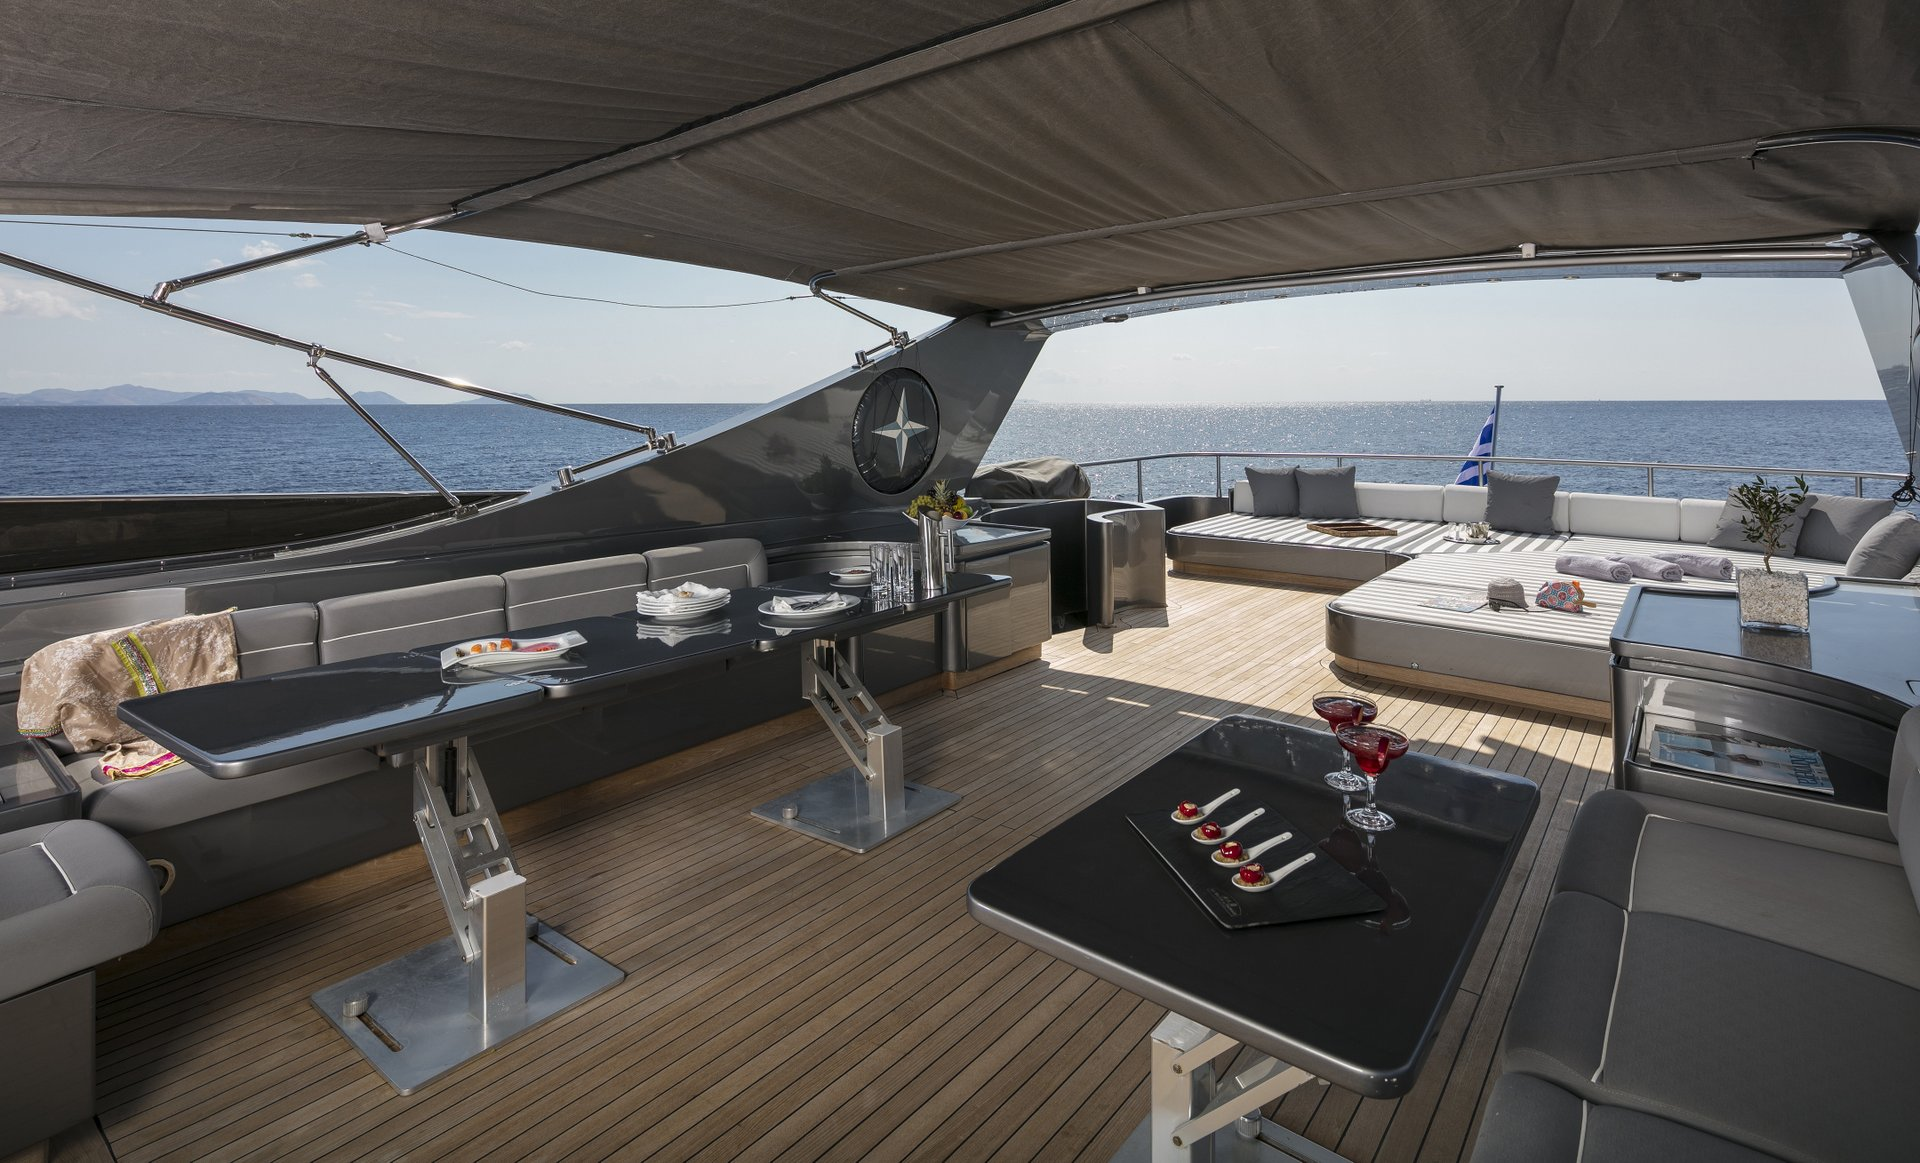 M/Y SUMMER DREAMS yacht for charter patio